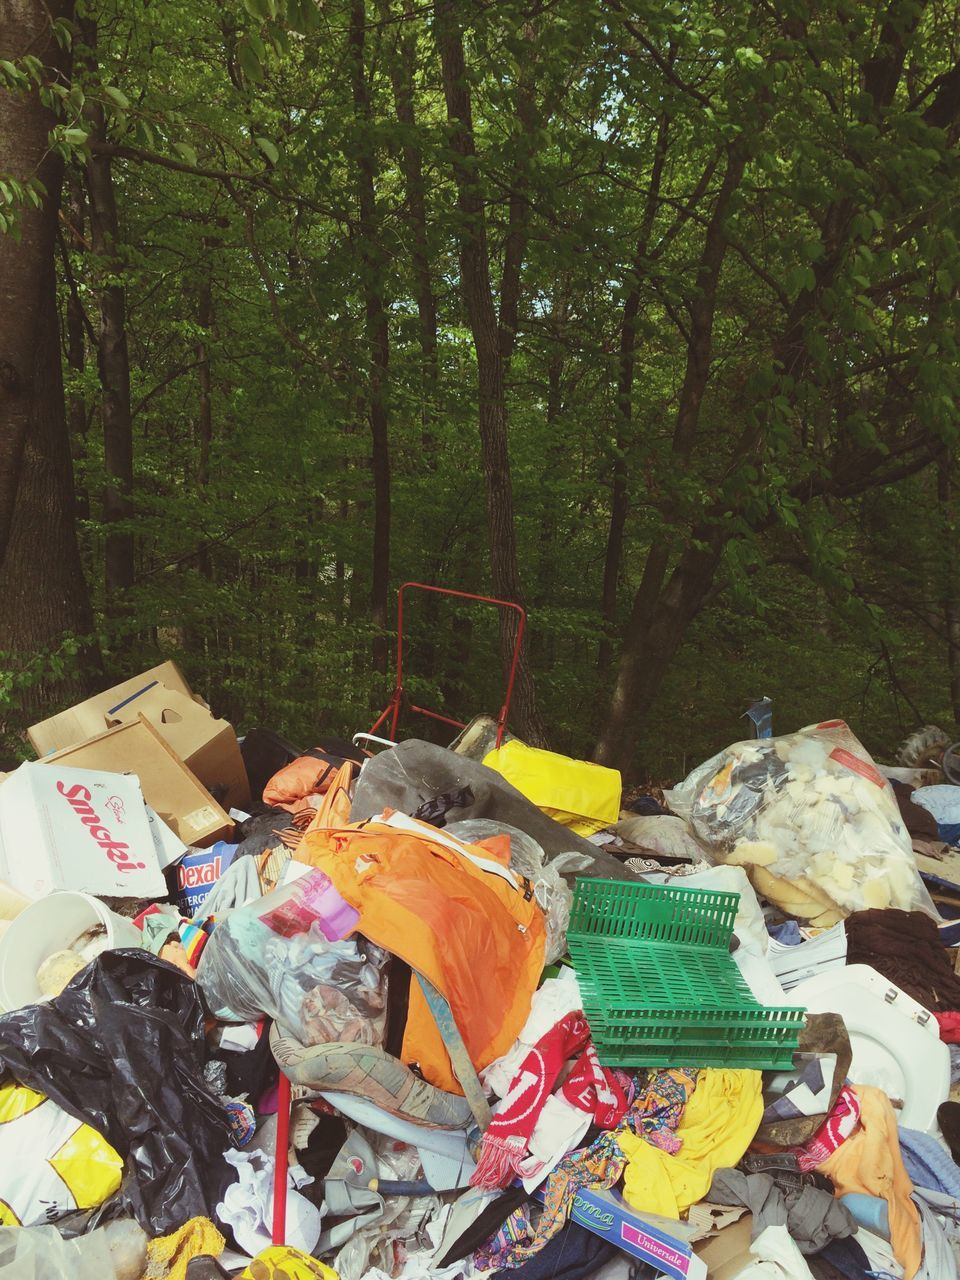 tree, large group of objects, no people, day, choice, outdoors, multi colored, waste management, nature